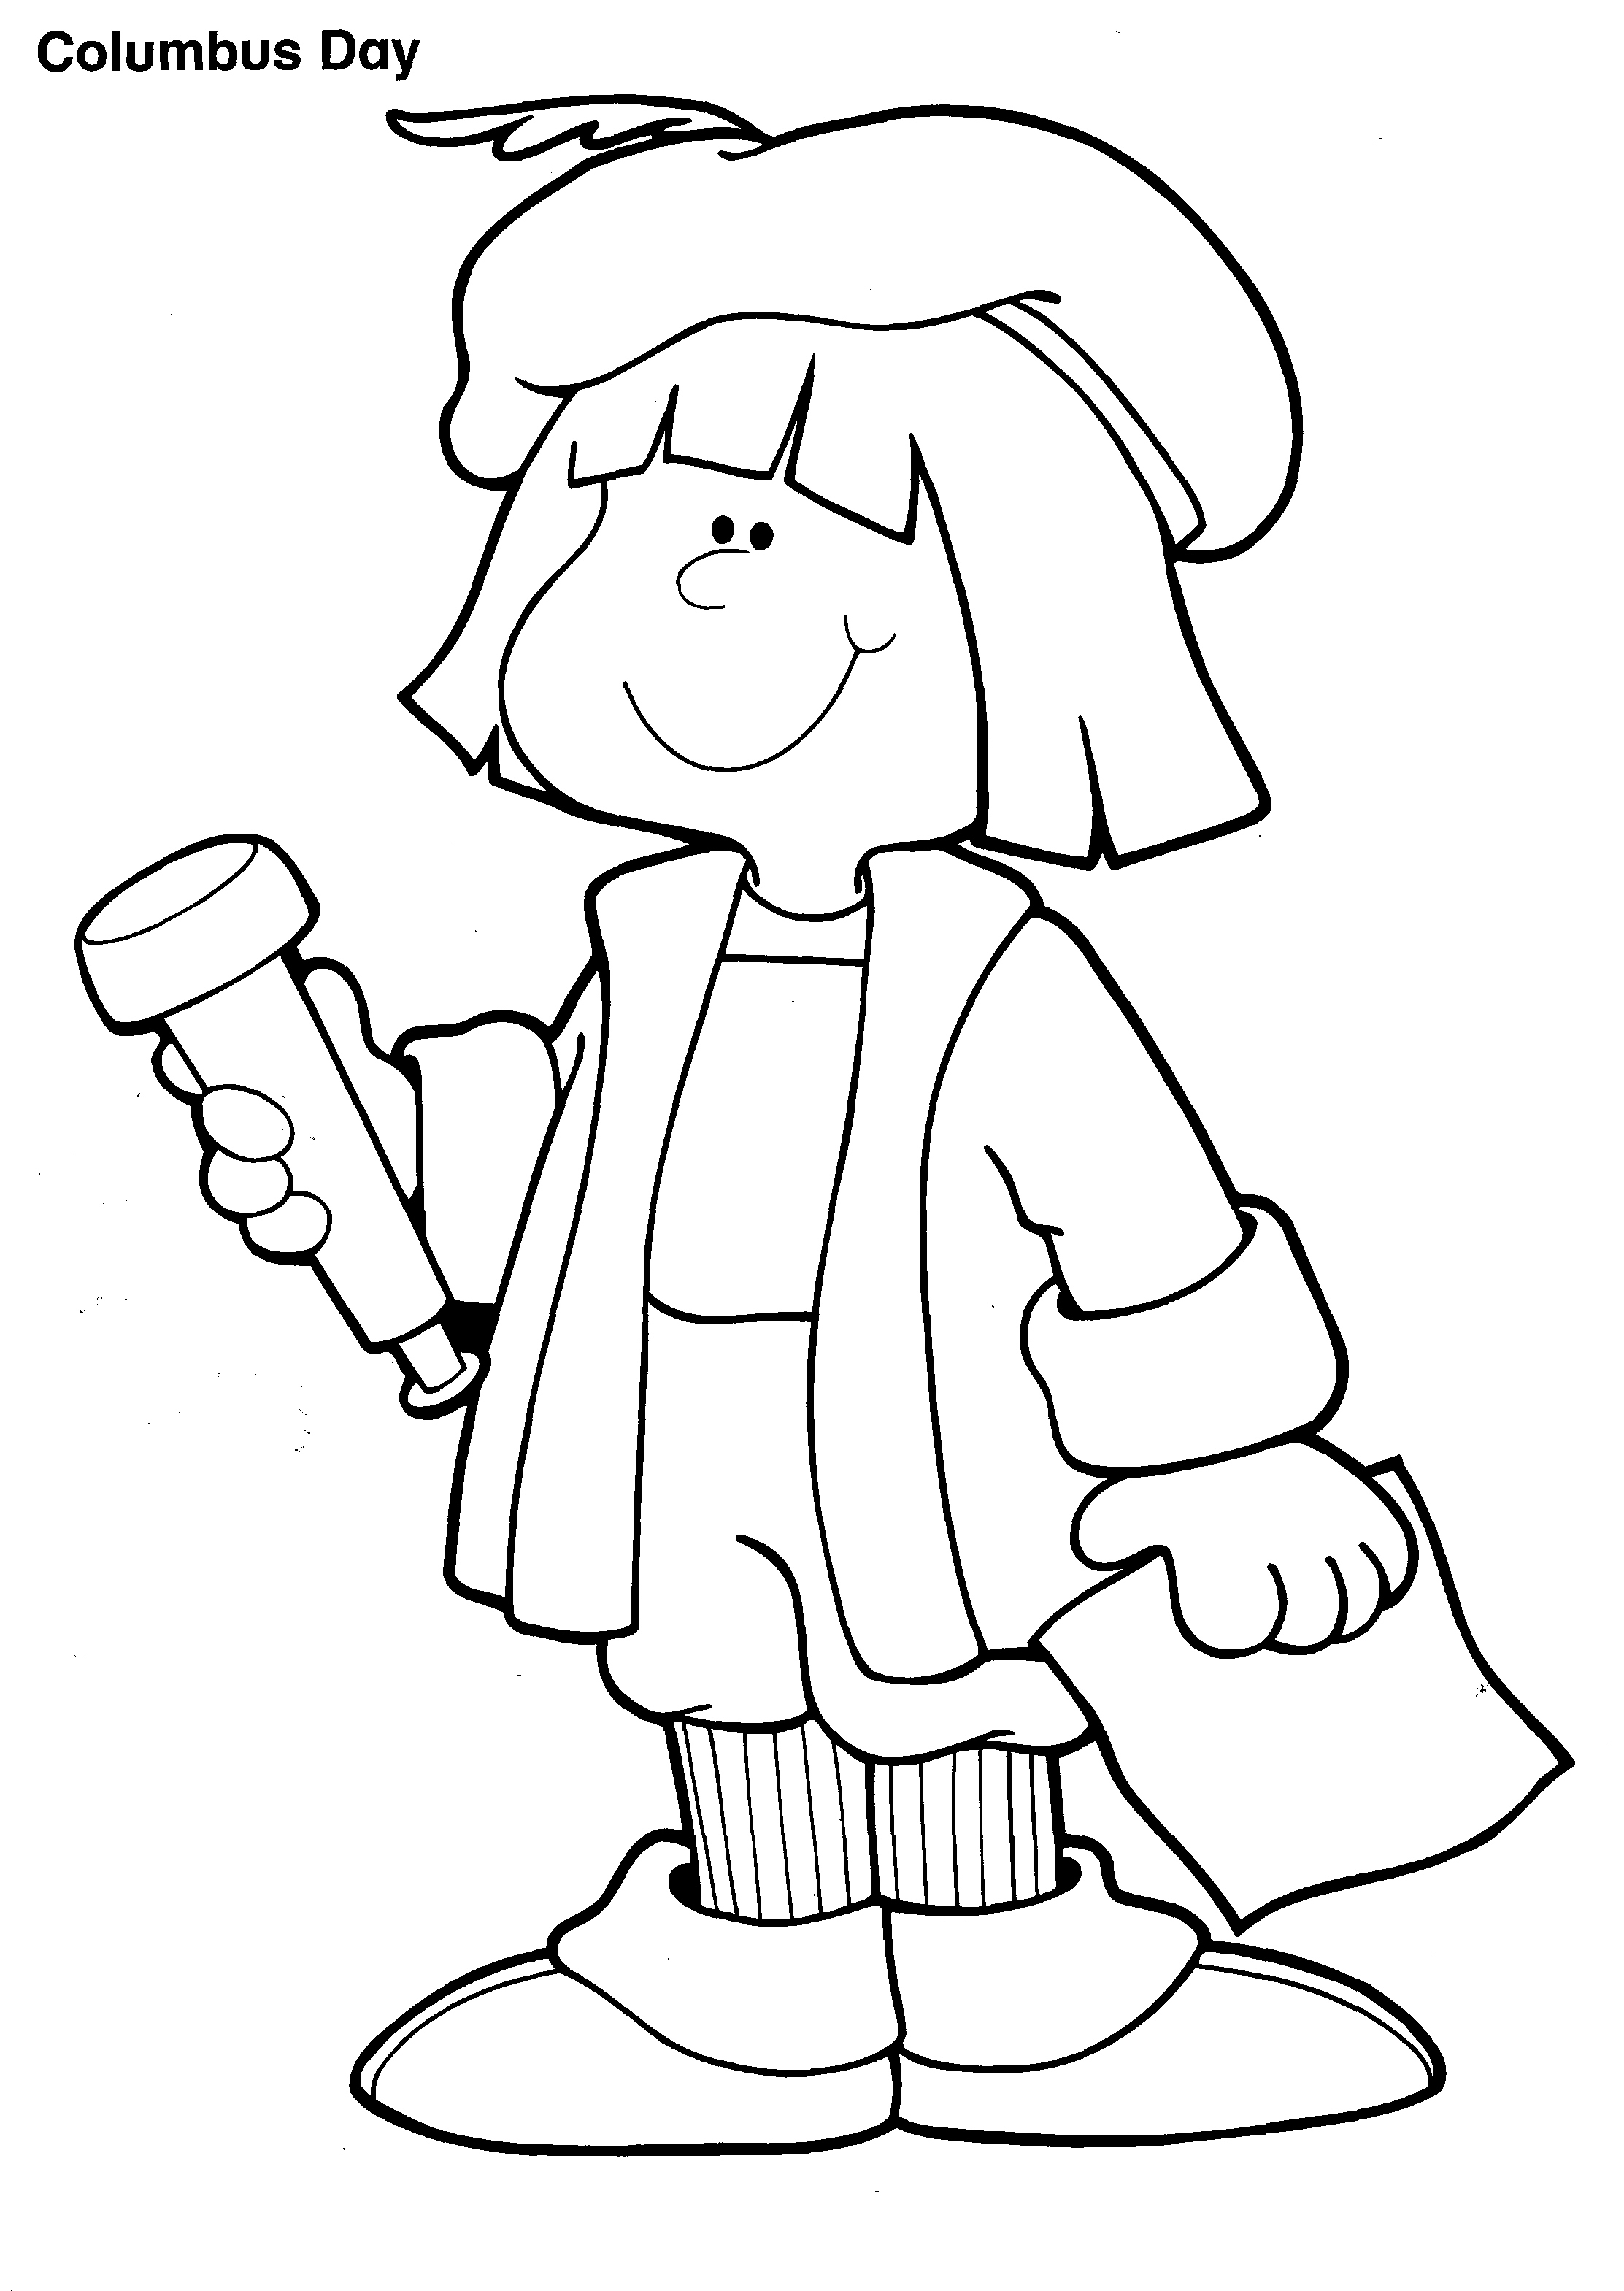 Columbus Day Coloring Pages - Best Coloring Pages For Kids